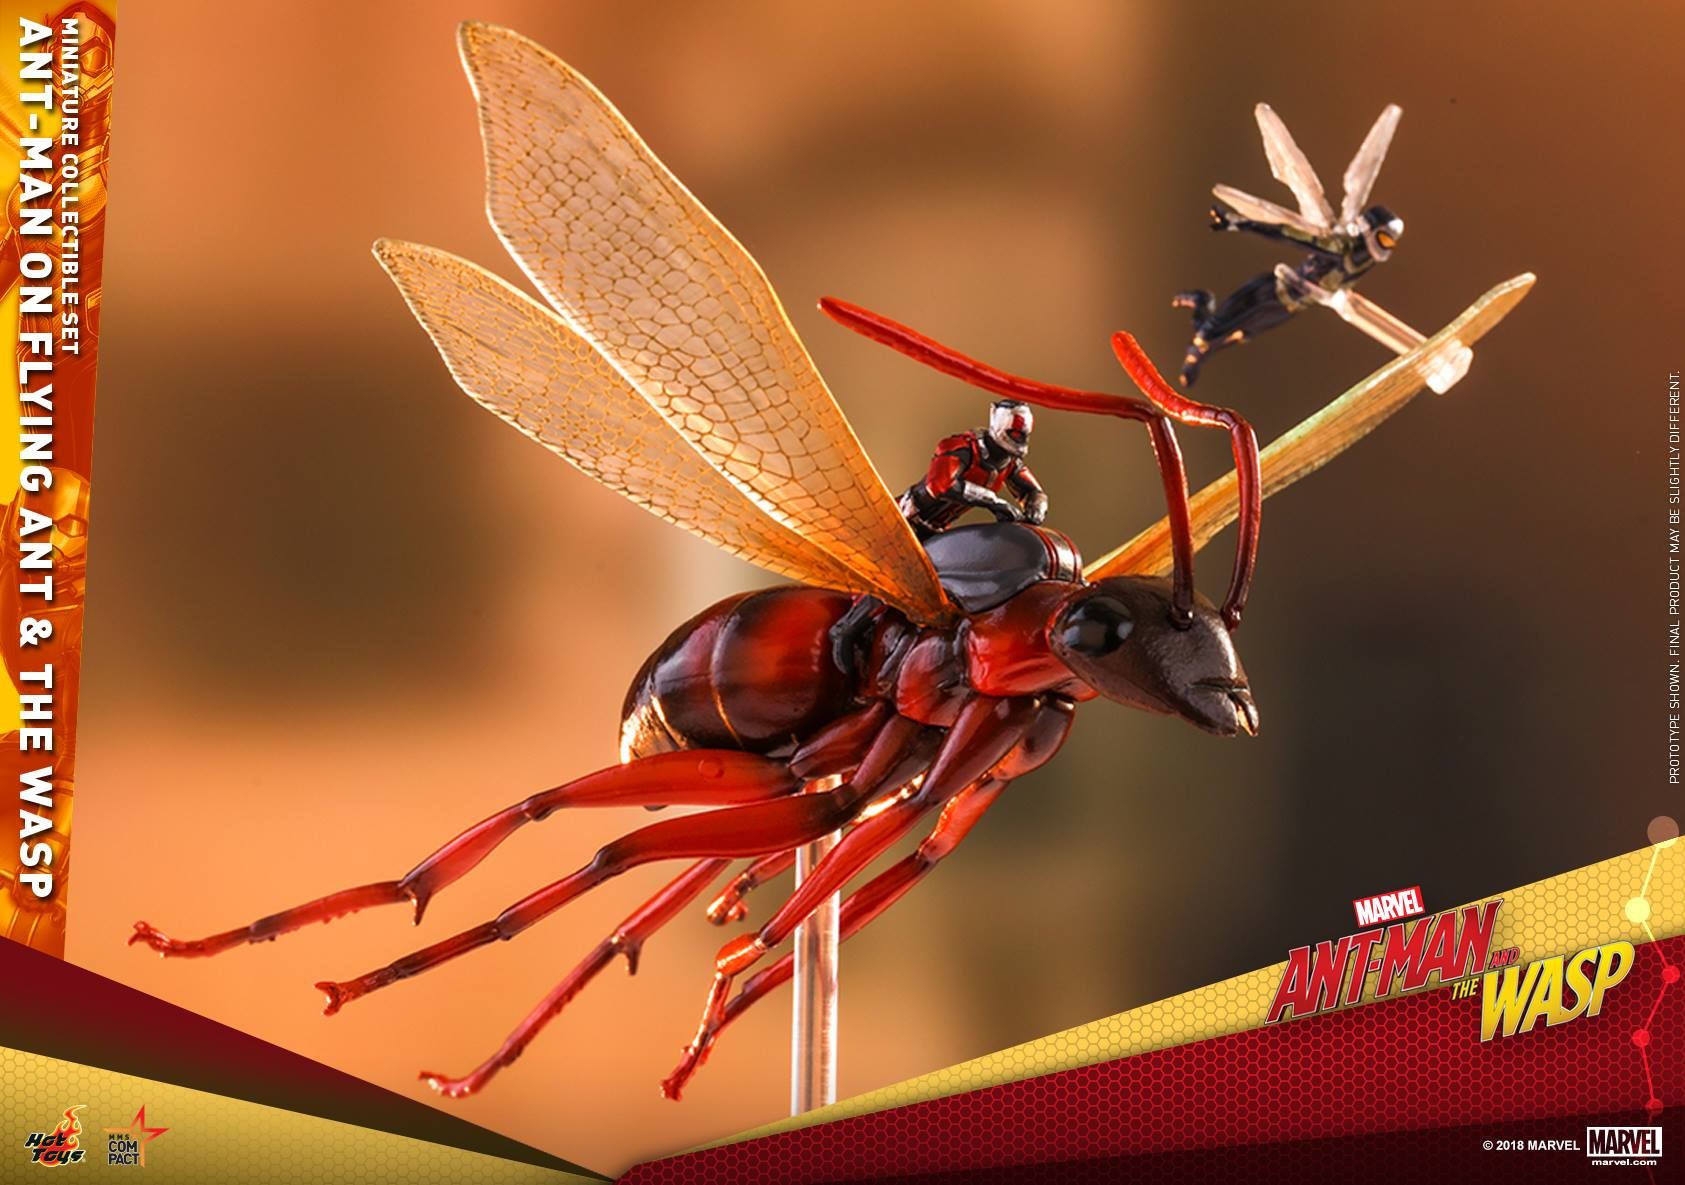 Hot Toys: Ant-Man And The Wasp Flying Ant And The Wasp Miniature Collectible Setini Duyurdu!